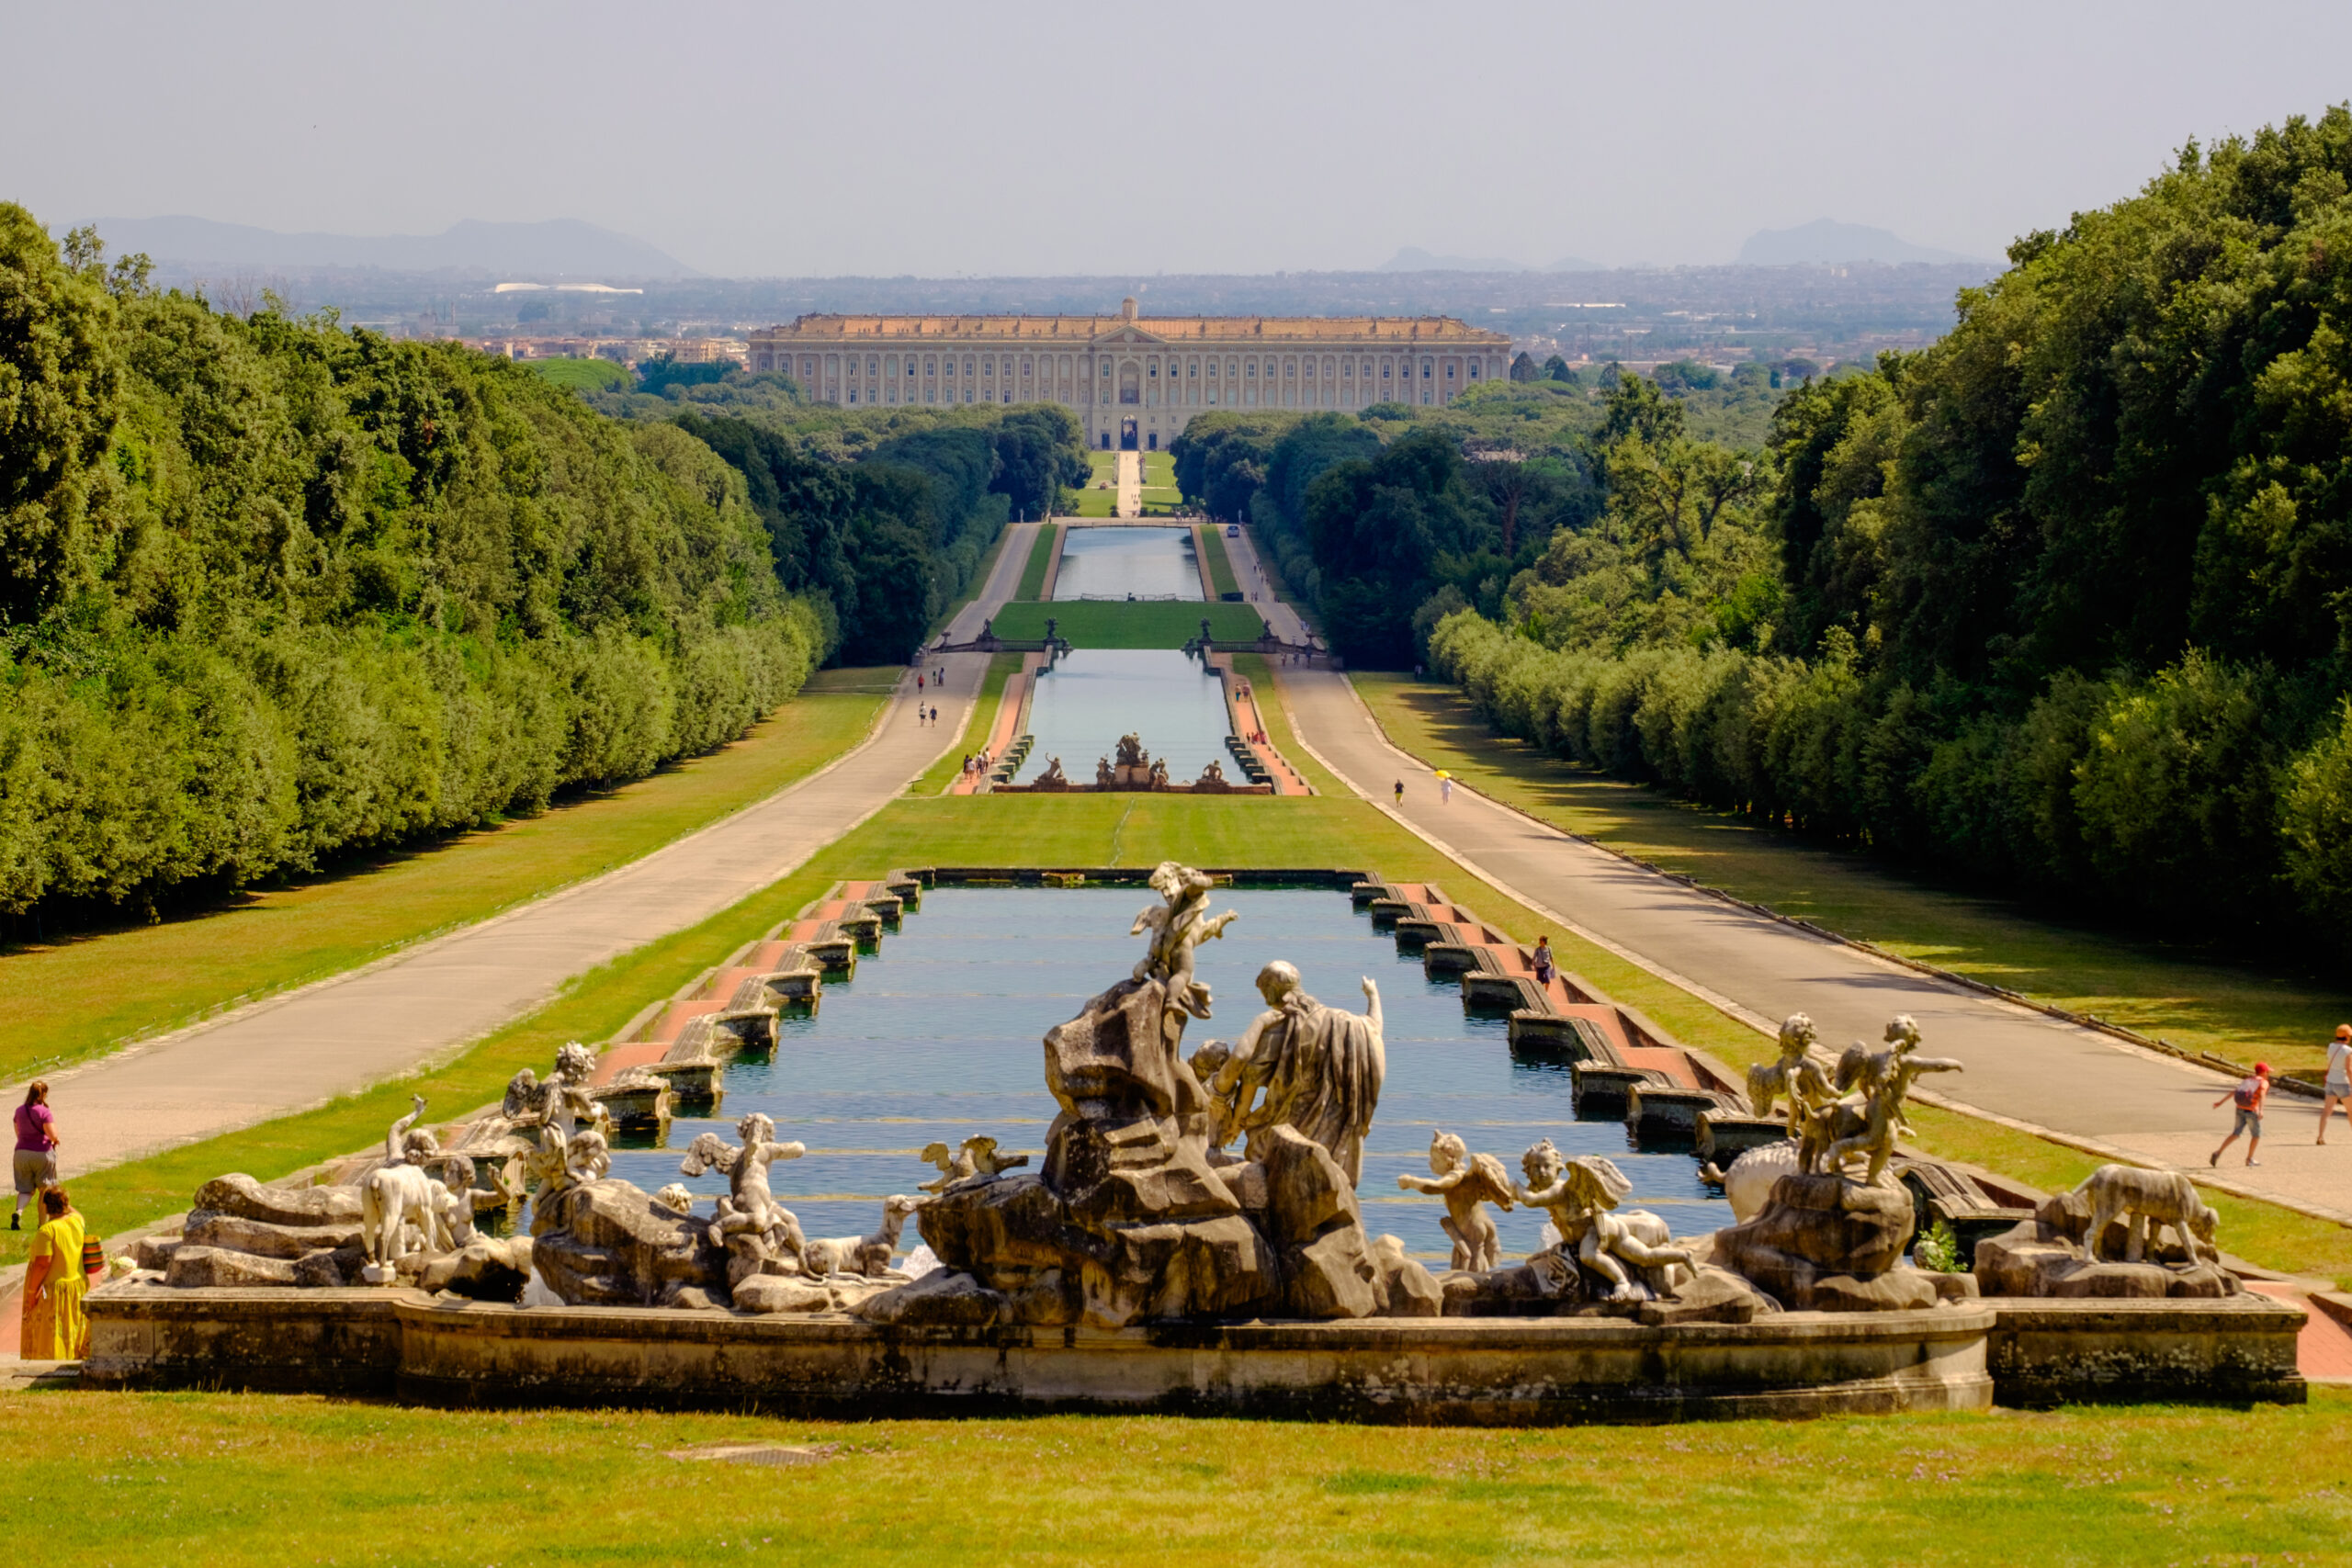 The 'Reggia di Caserta', in the background, is a former royal palace. The huge garden is 3 kilometers long and has sculptures and canals.